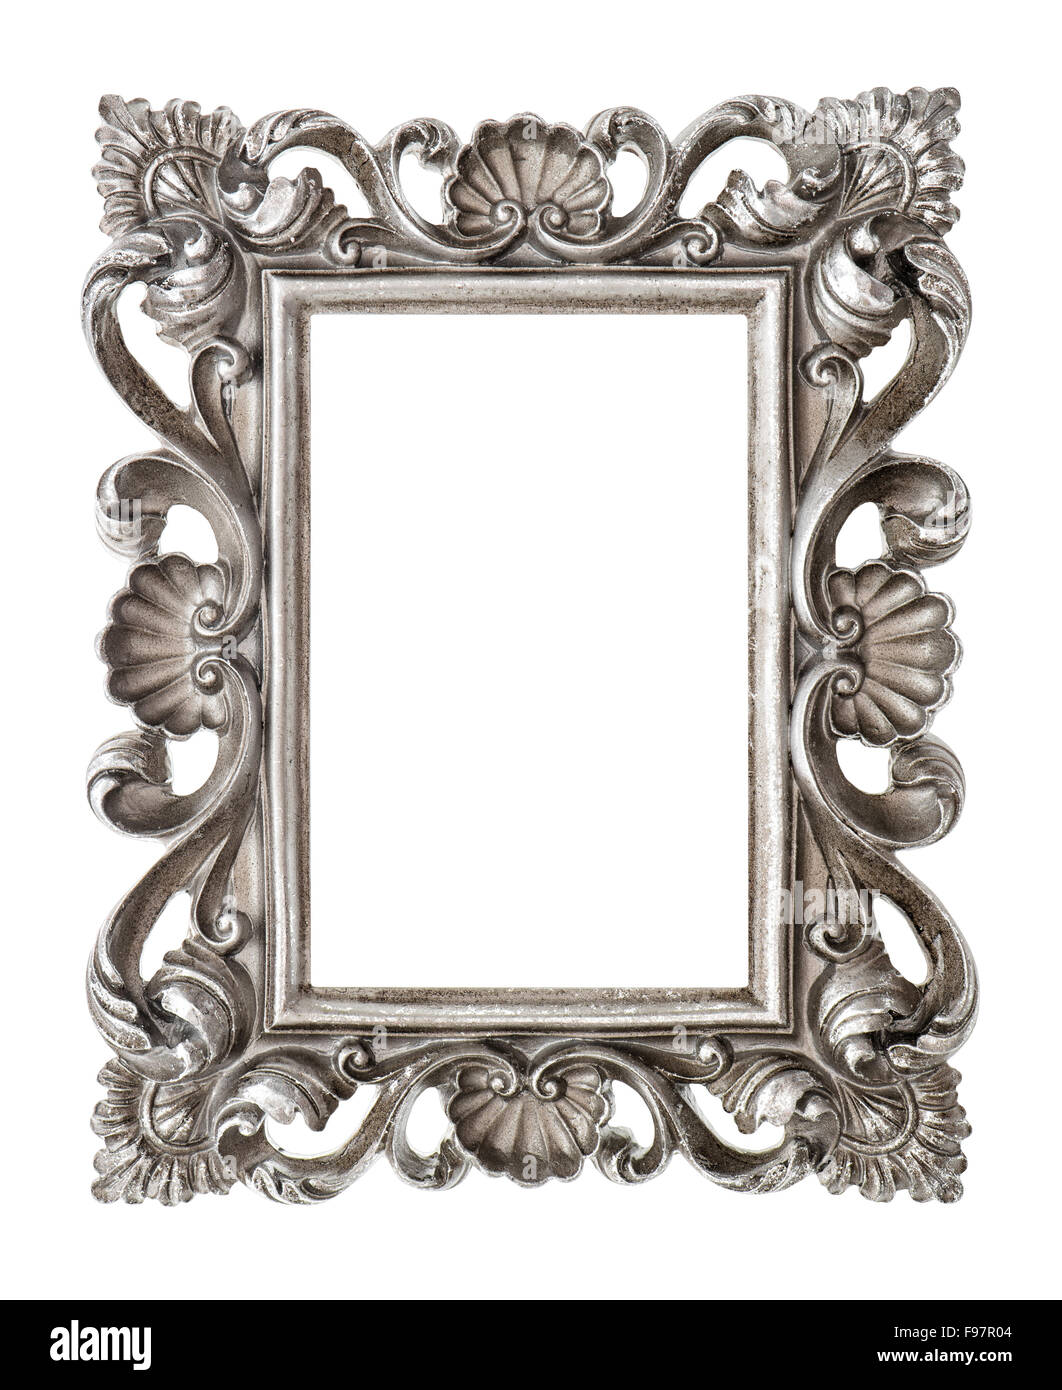 Frame your picture, photo, image. Vintage silver baroque style ...